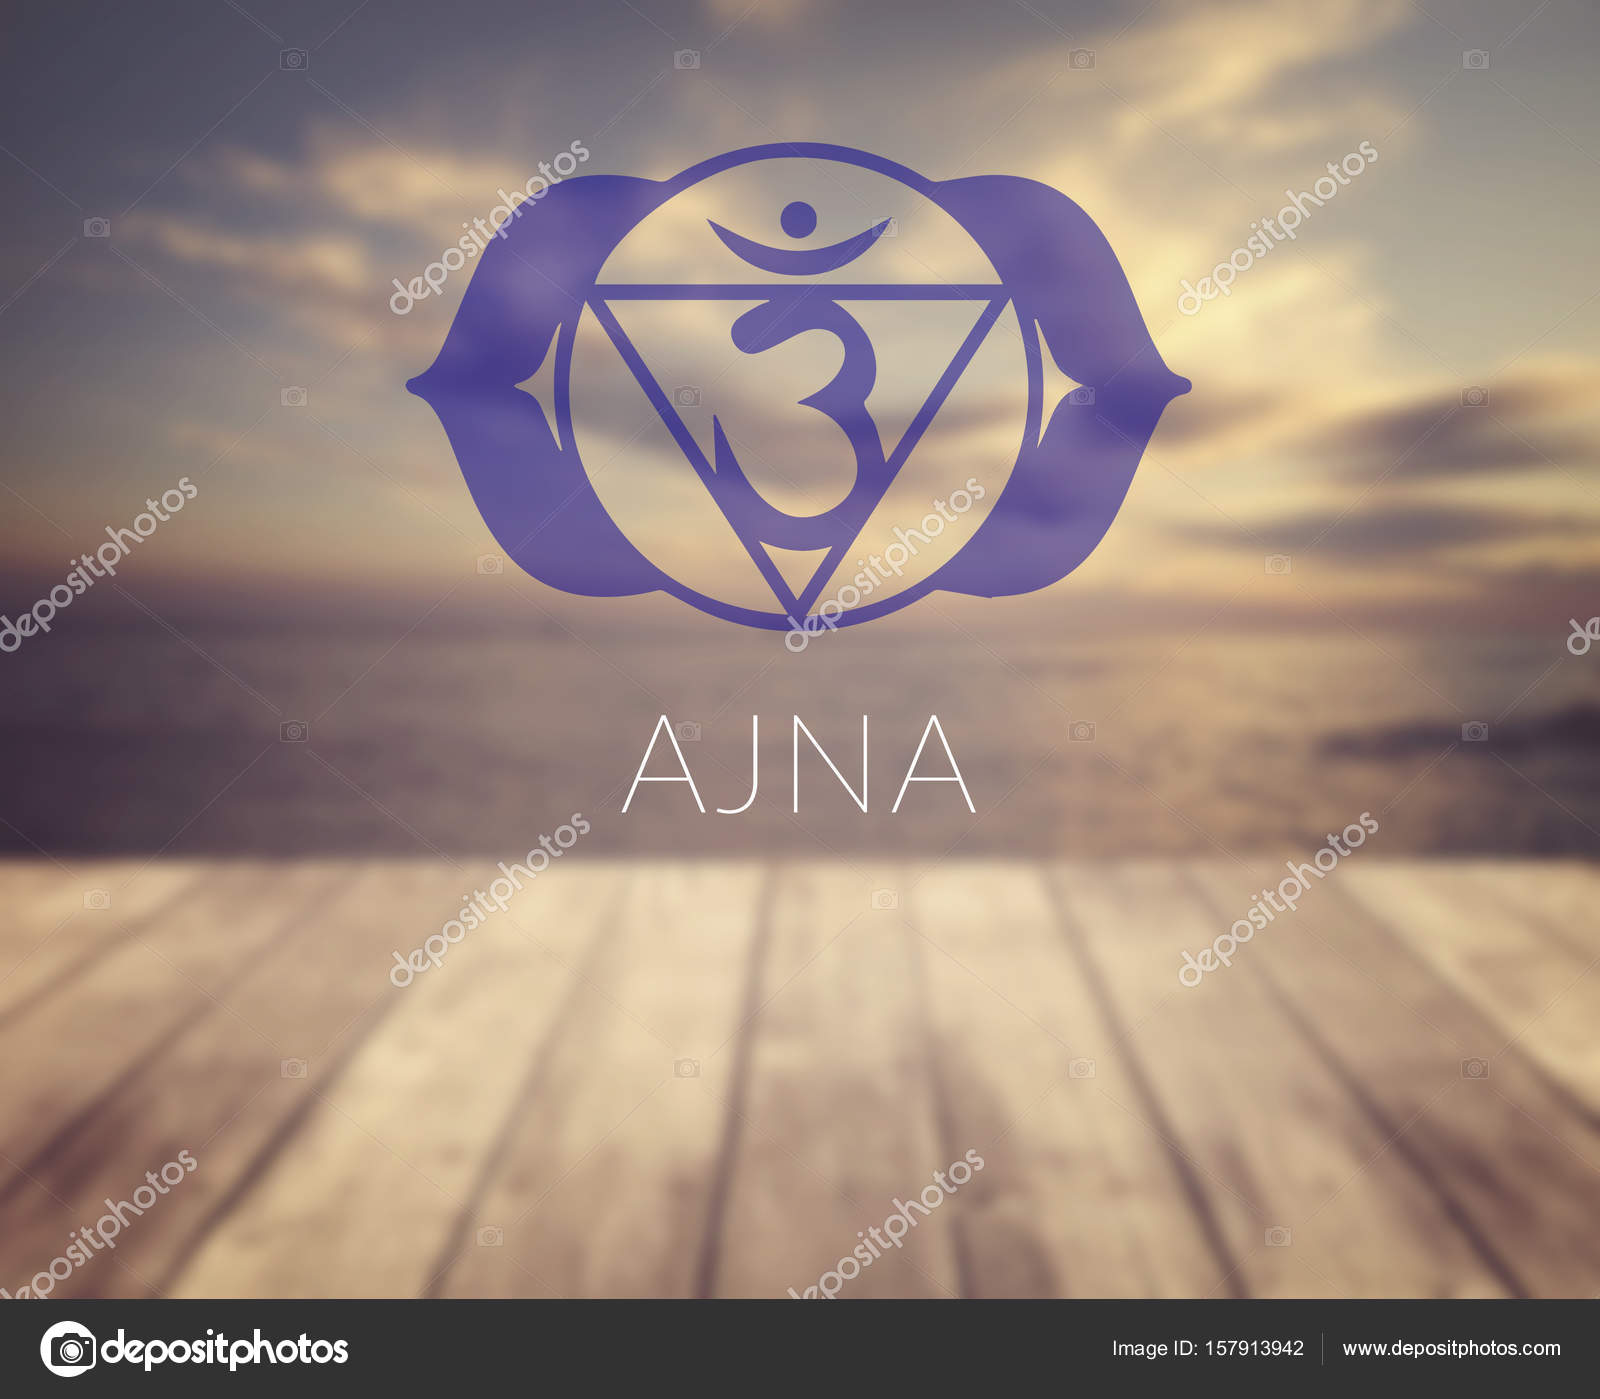 Ajna Chakra Symbol Poster For Yoga Class With A Sea View Stock